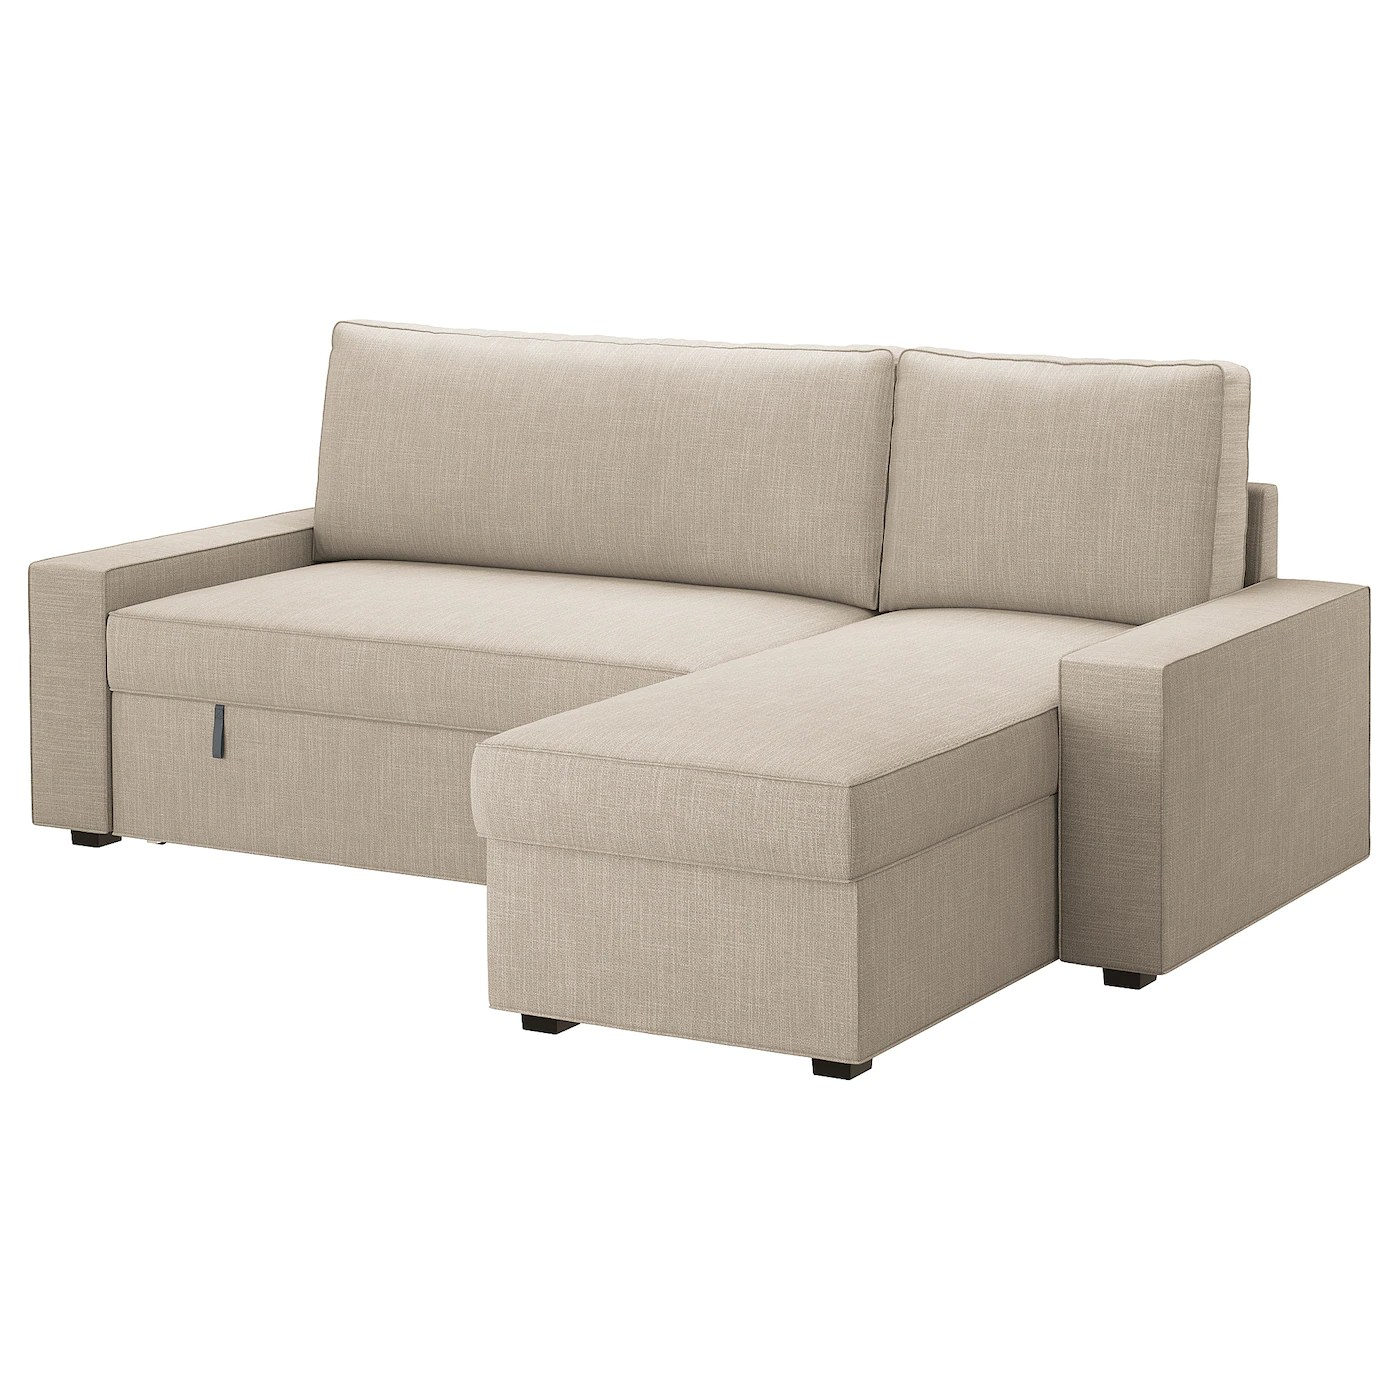 beige chair covers buy west elm saddle office vilasund cover sofa bed with chaise longue hillared